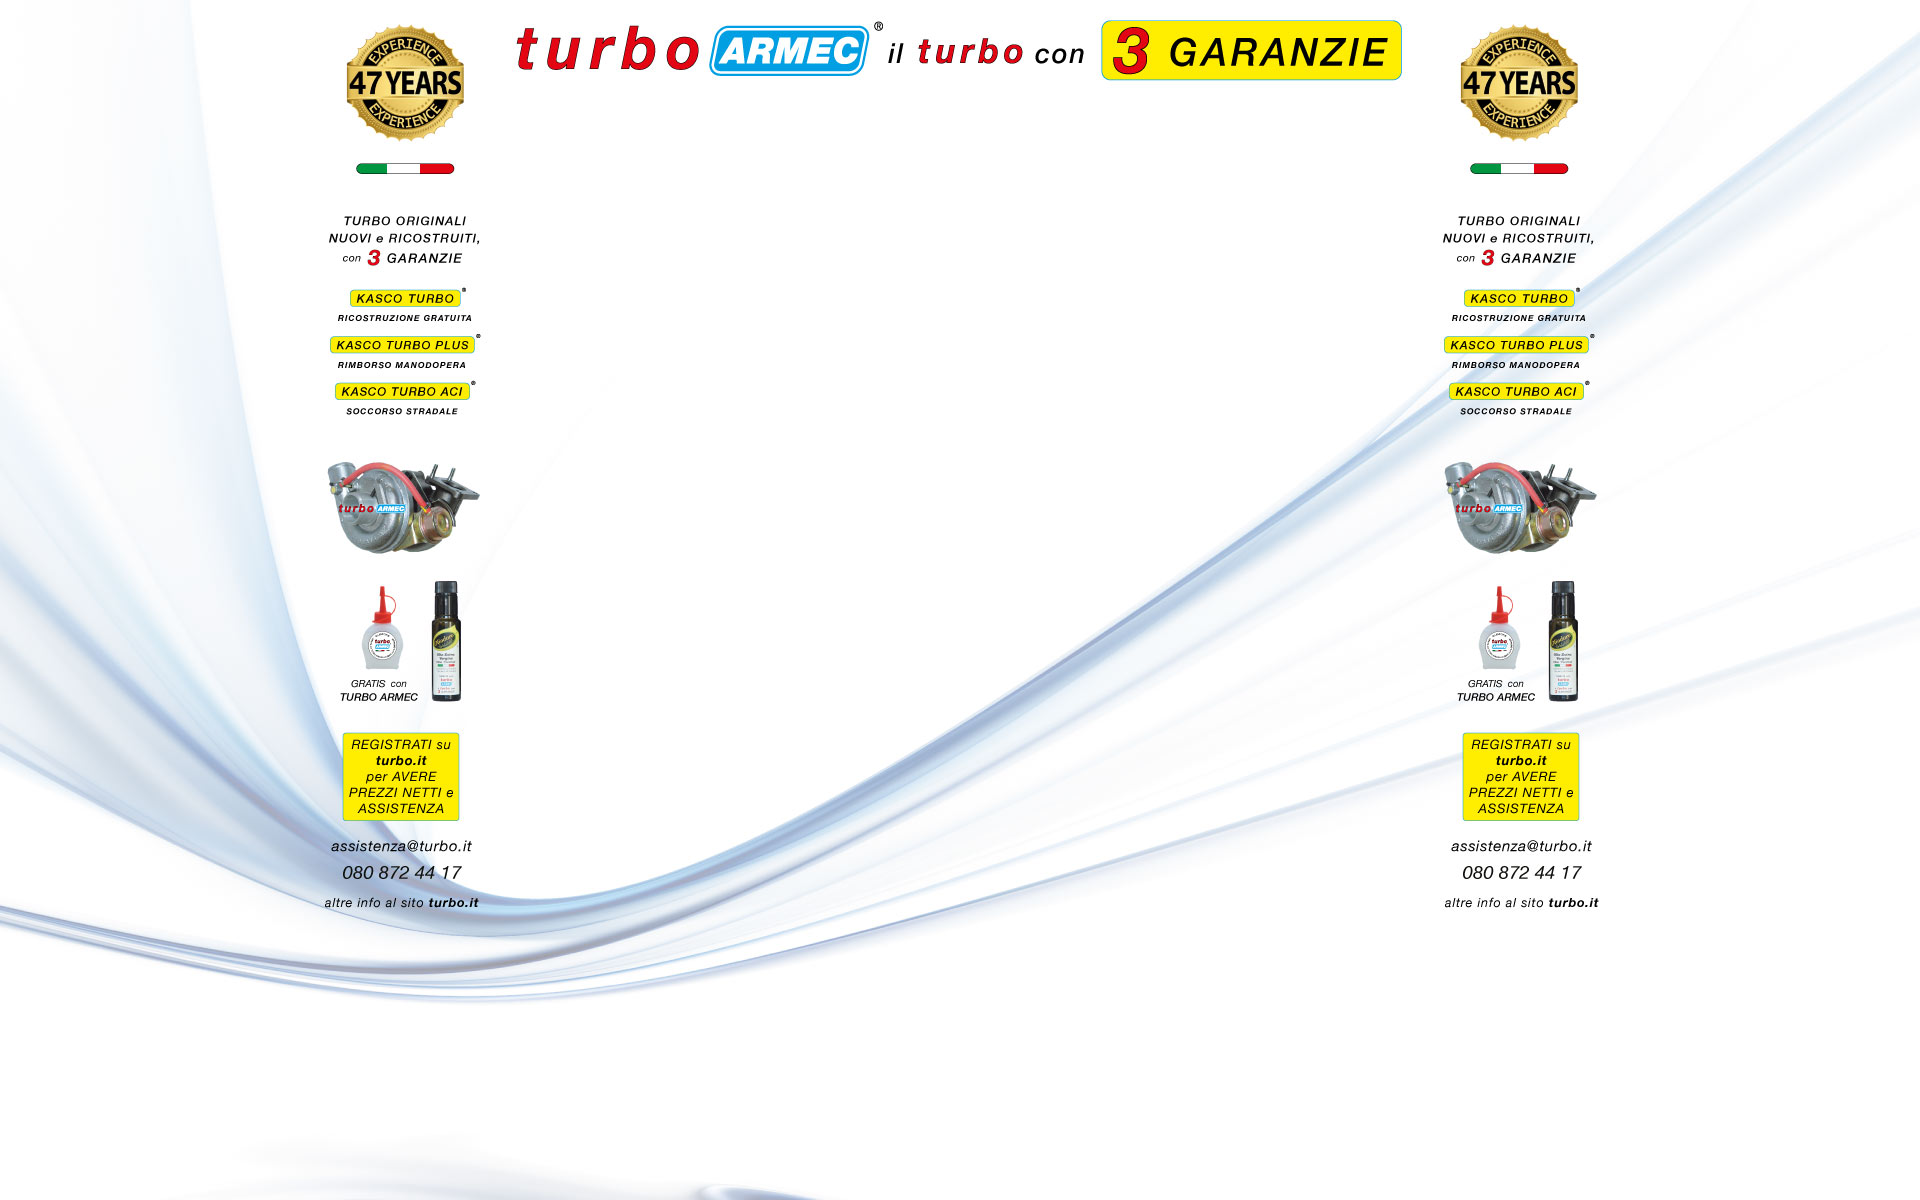 Skin Banner Armec - Turbo.it